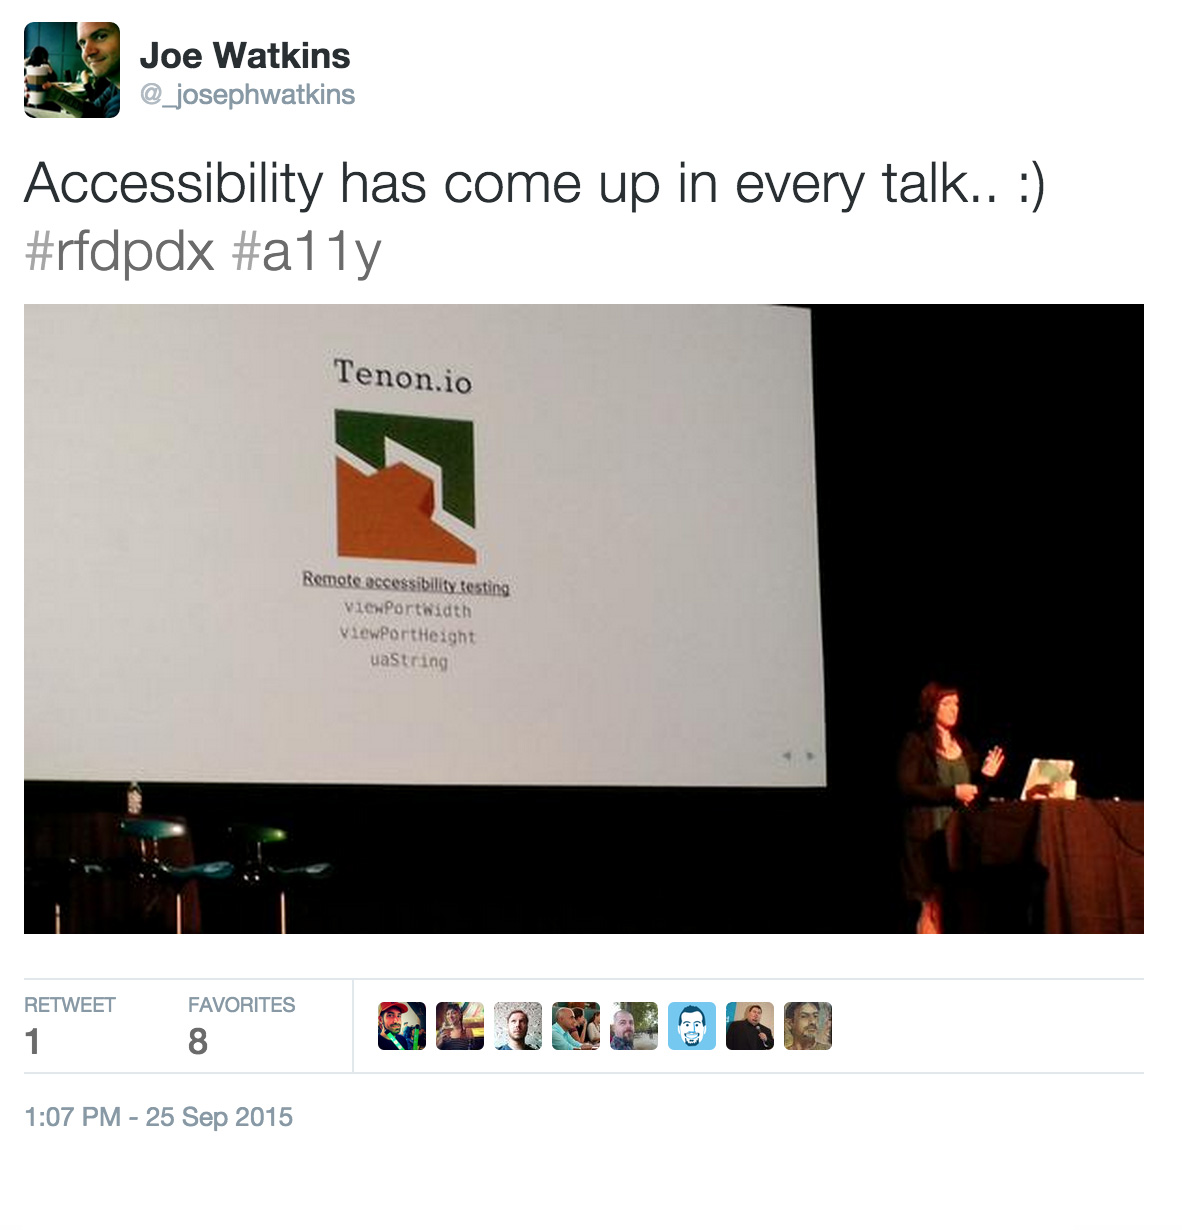 Tweet about accessibility being mentioned in every talk